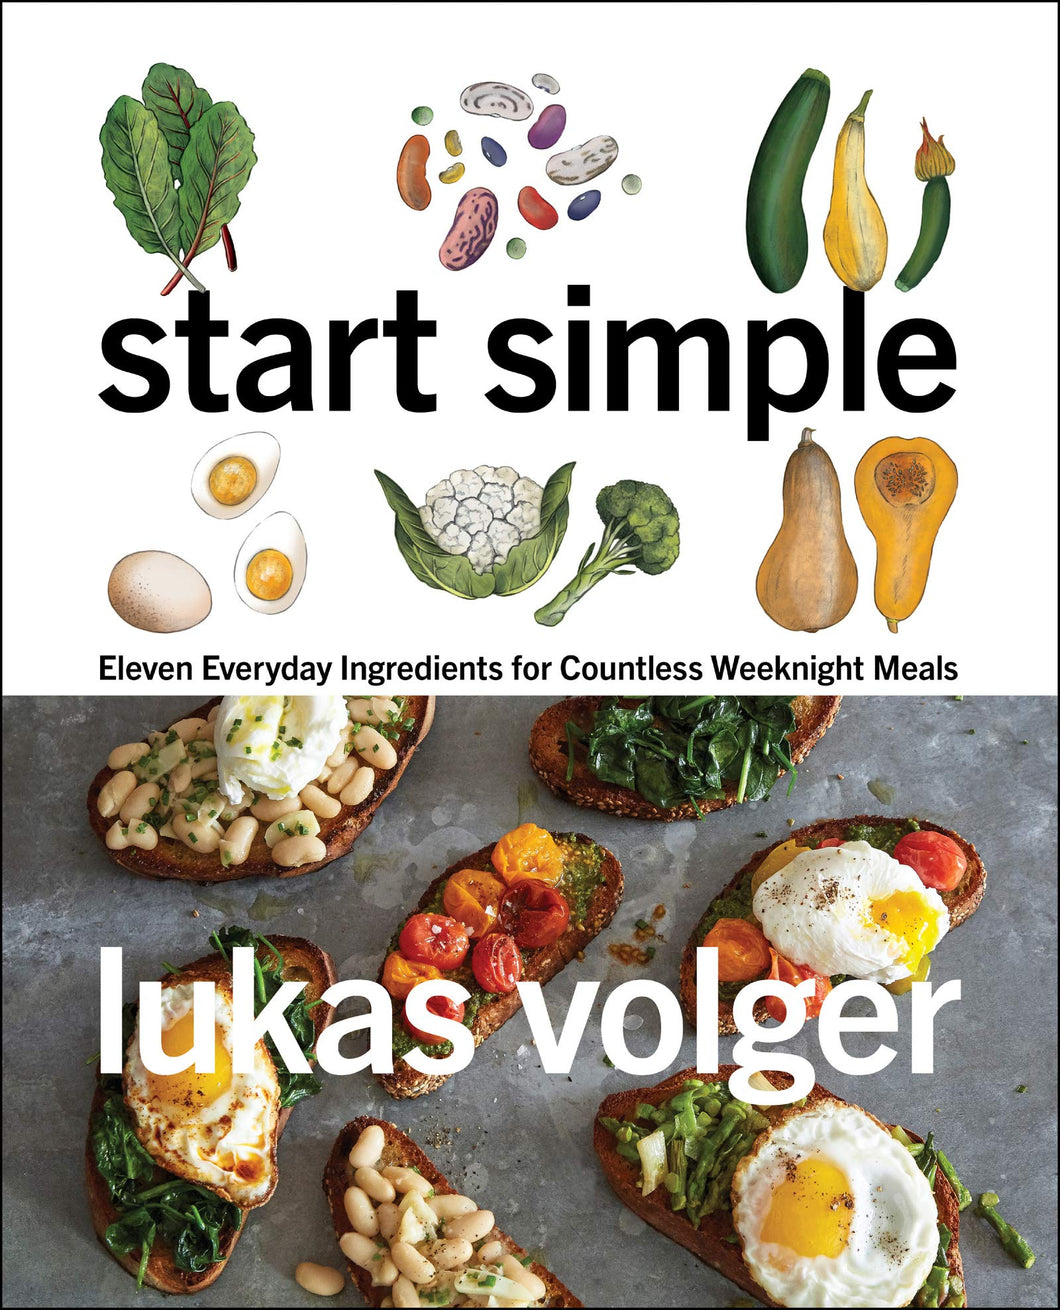 Start Simple: Eleven Everyday Ingredients for Countless Weeknight Meals by Lukas Volger